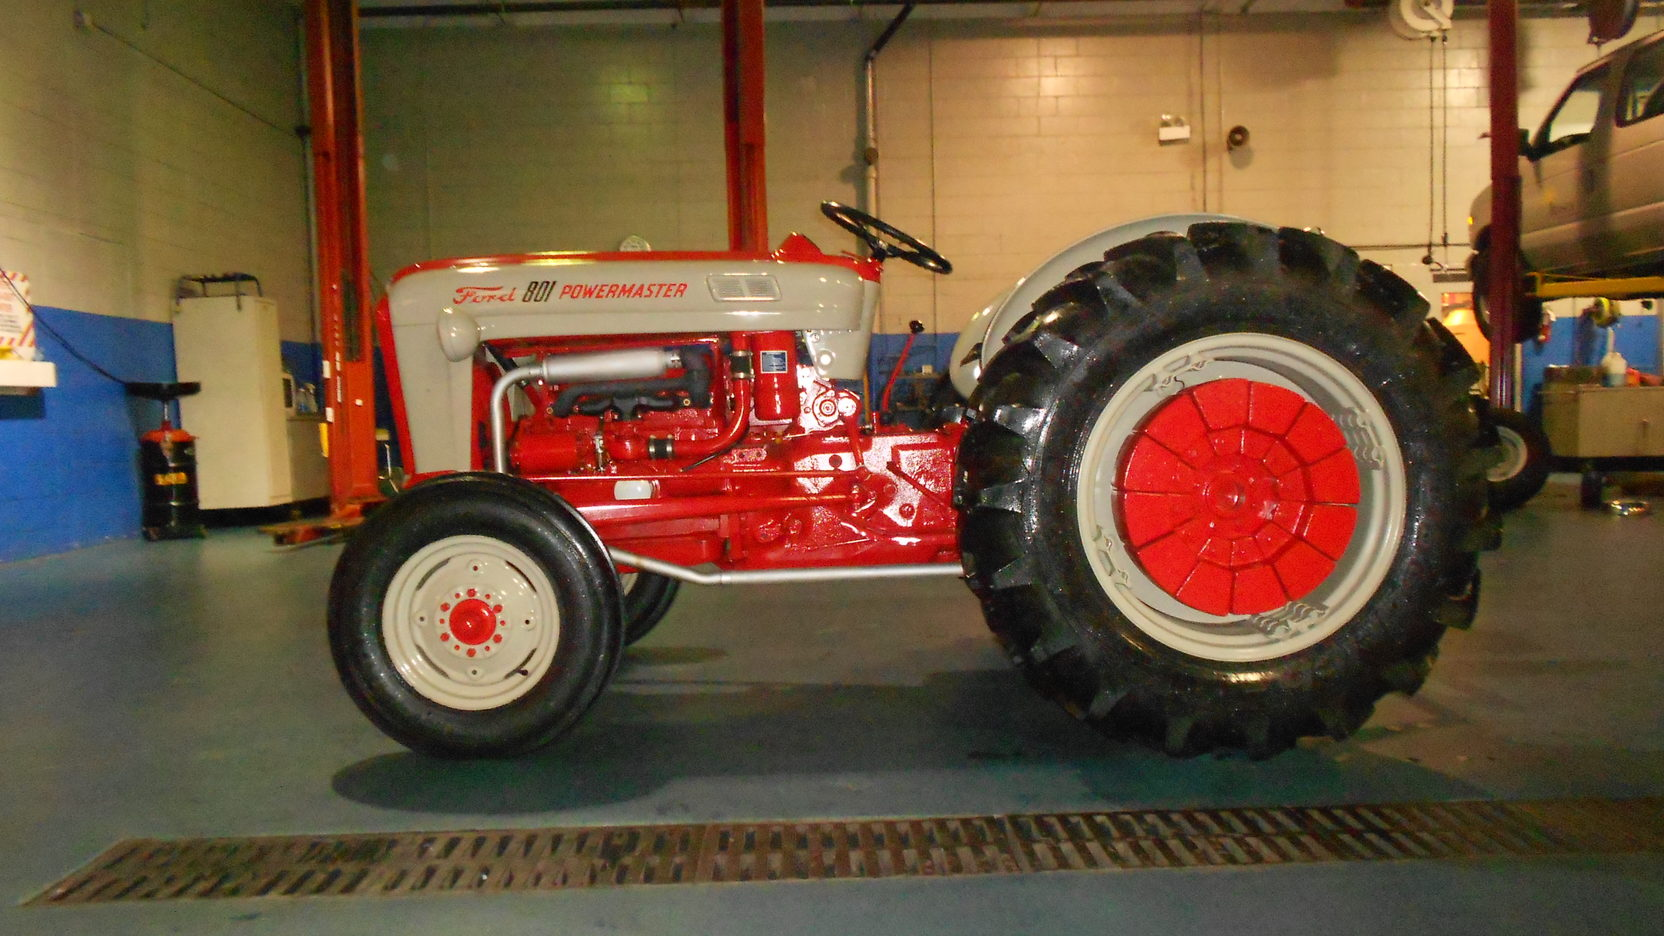 801 Powermaster Tractor Wiring Diagram 12 Volt Get Free Image About